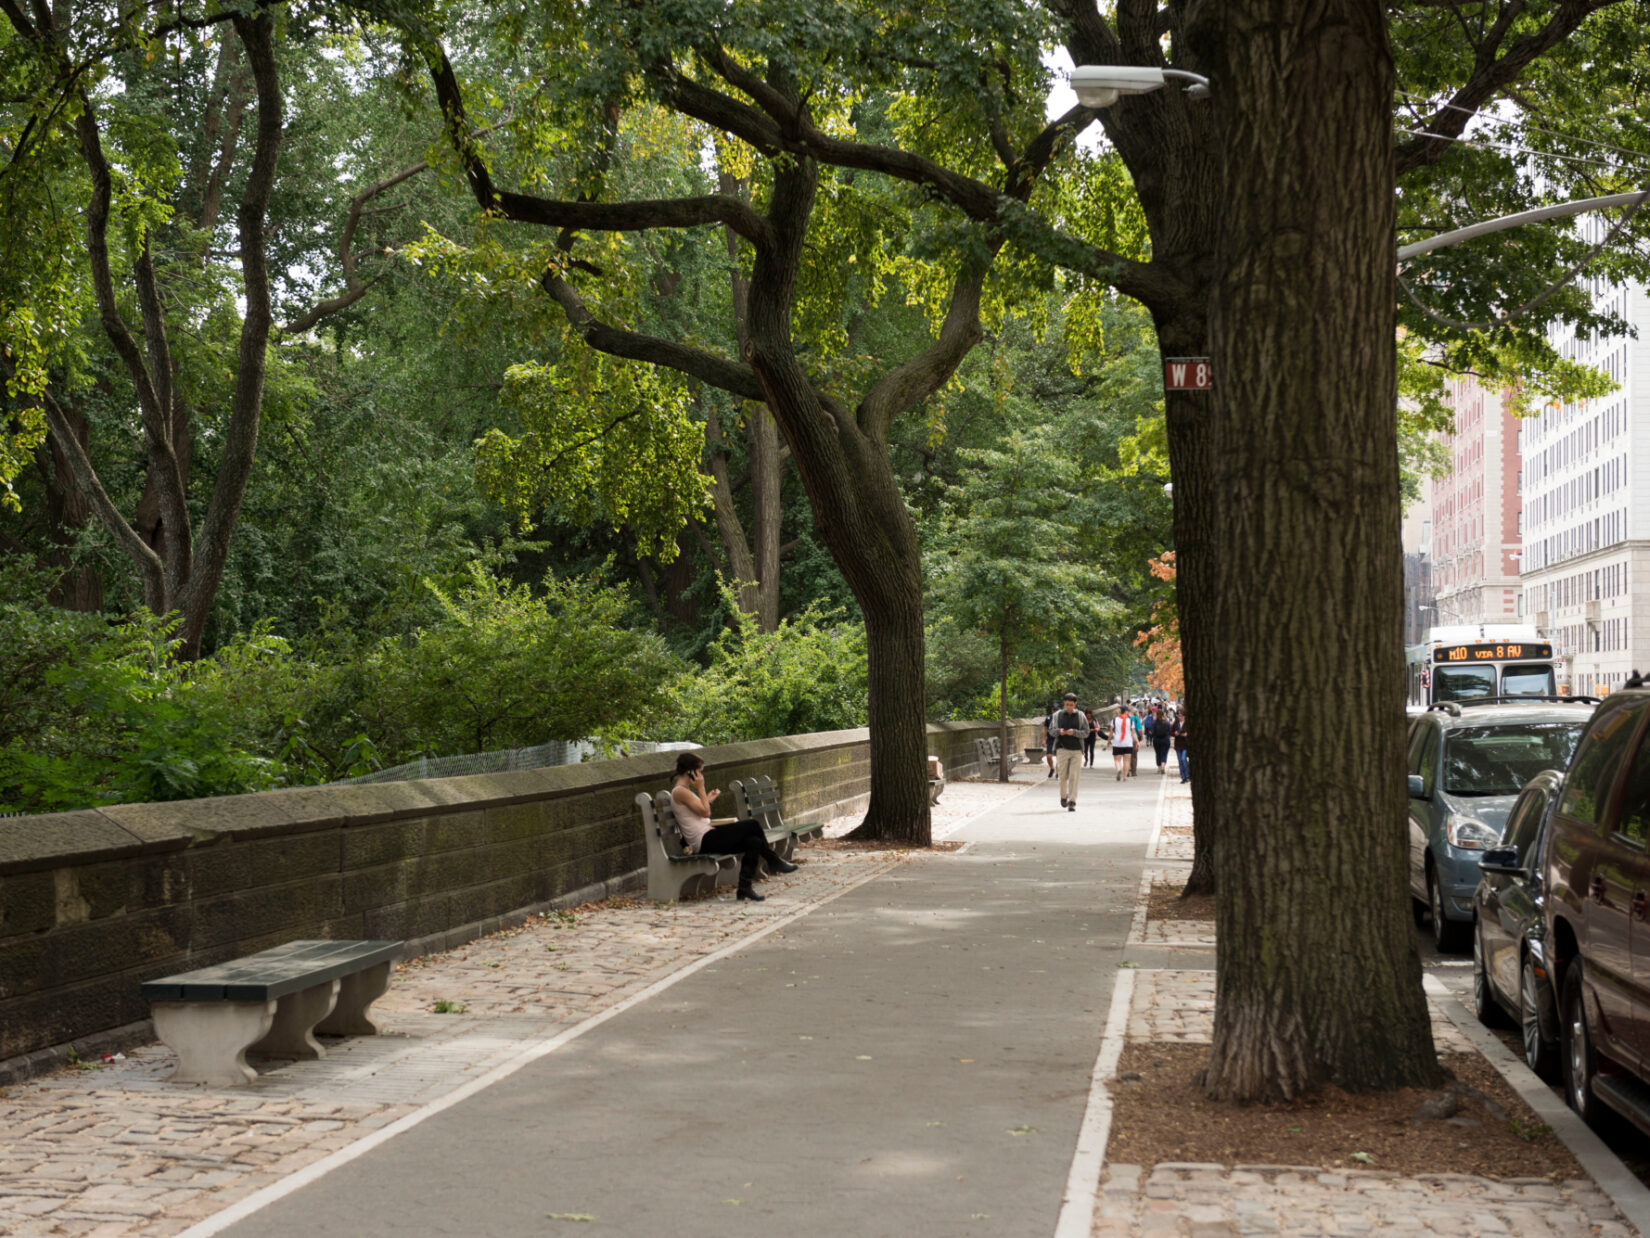 A view of the perimeter in summer, with pedestrians in the distance, one of them sitting on a park bench.